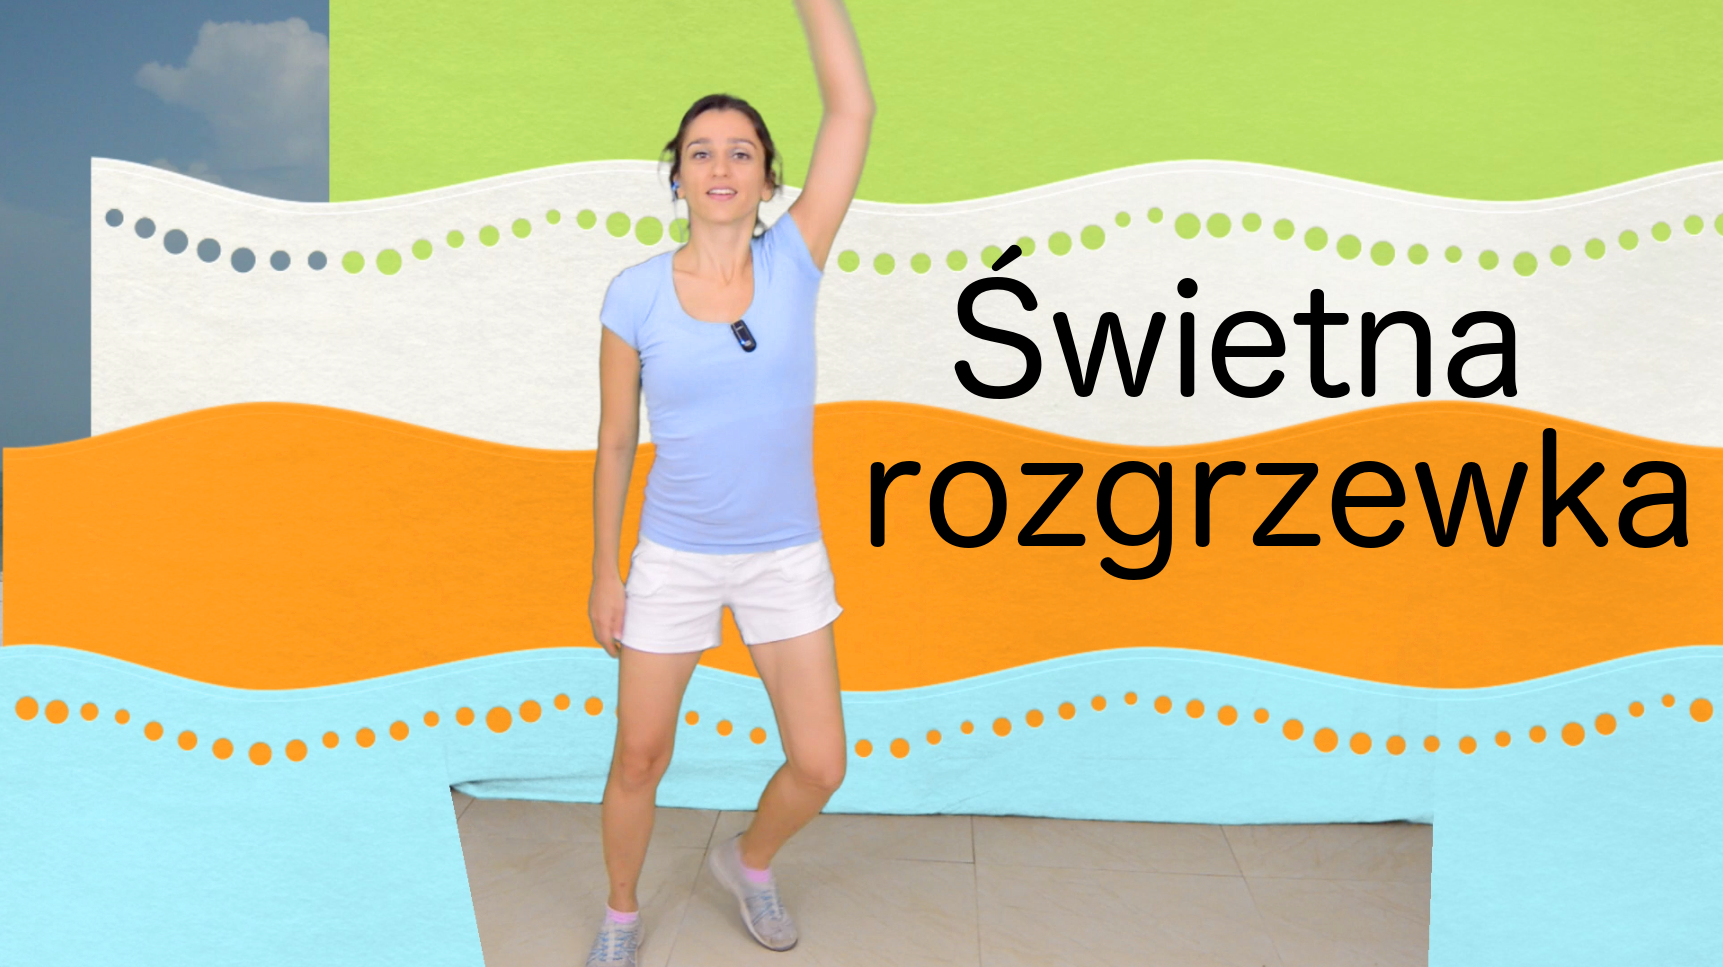 warming up, warm up, rozgrzewka, ćwiczenia na mięśnie, ćwiczenia brzucha, abs, stretching, ćwiczenia rozciągające, ćwiczenia relaksacyjne, ćwiczenia na nogi, ćwiczenia na brzuch, ćwiczenia na klatkę piersiową, ćwiczenia, fitnesss exercises for the muscles, abdominal exercises, abs, stretching, stretching, relaxation exercises, exercises for legs, exercises for the abdomen, chest exercises, exercises, weight loss, odchudzanie, workout,